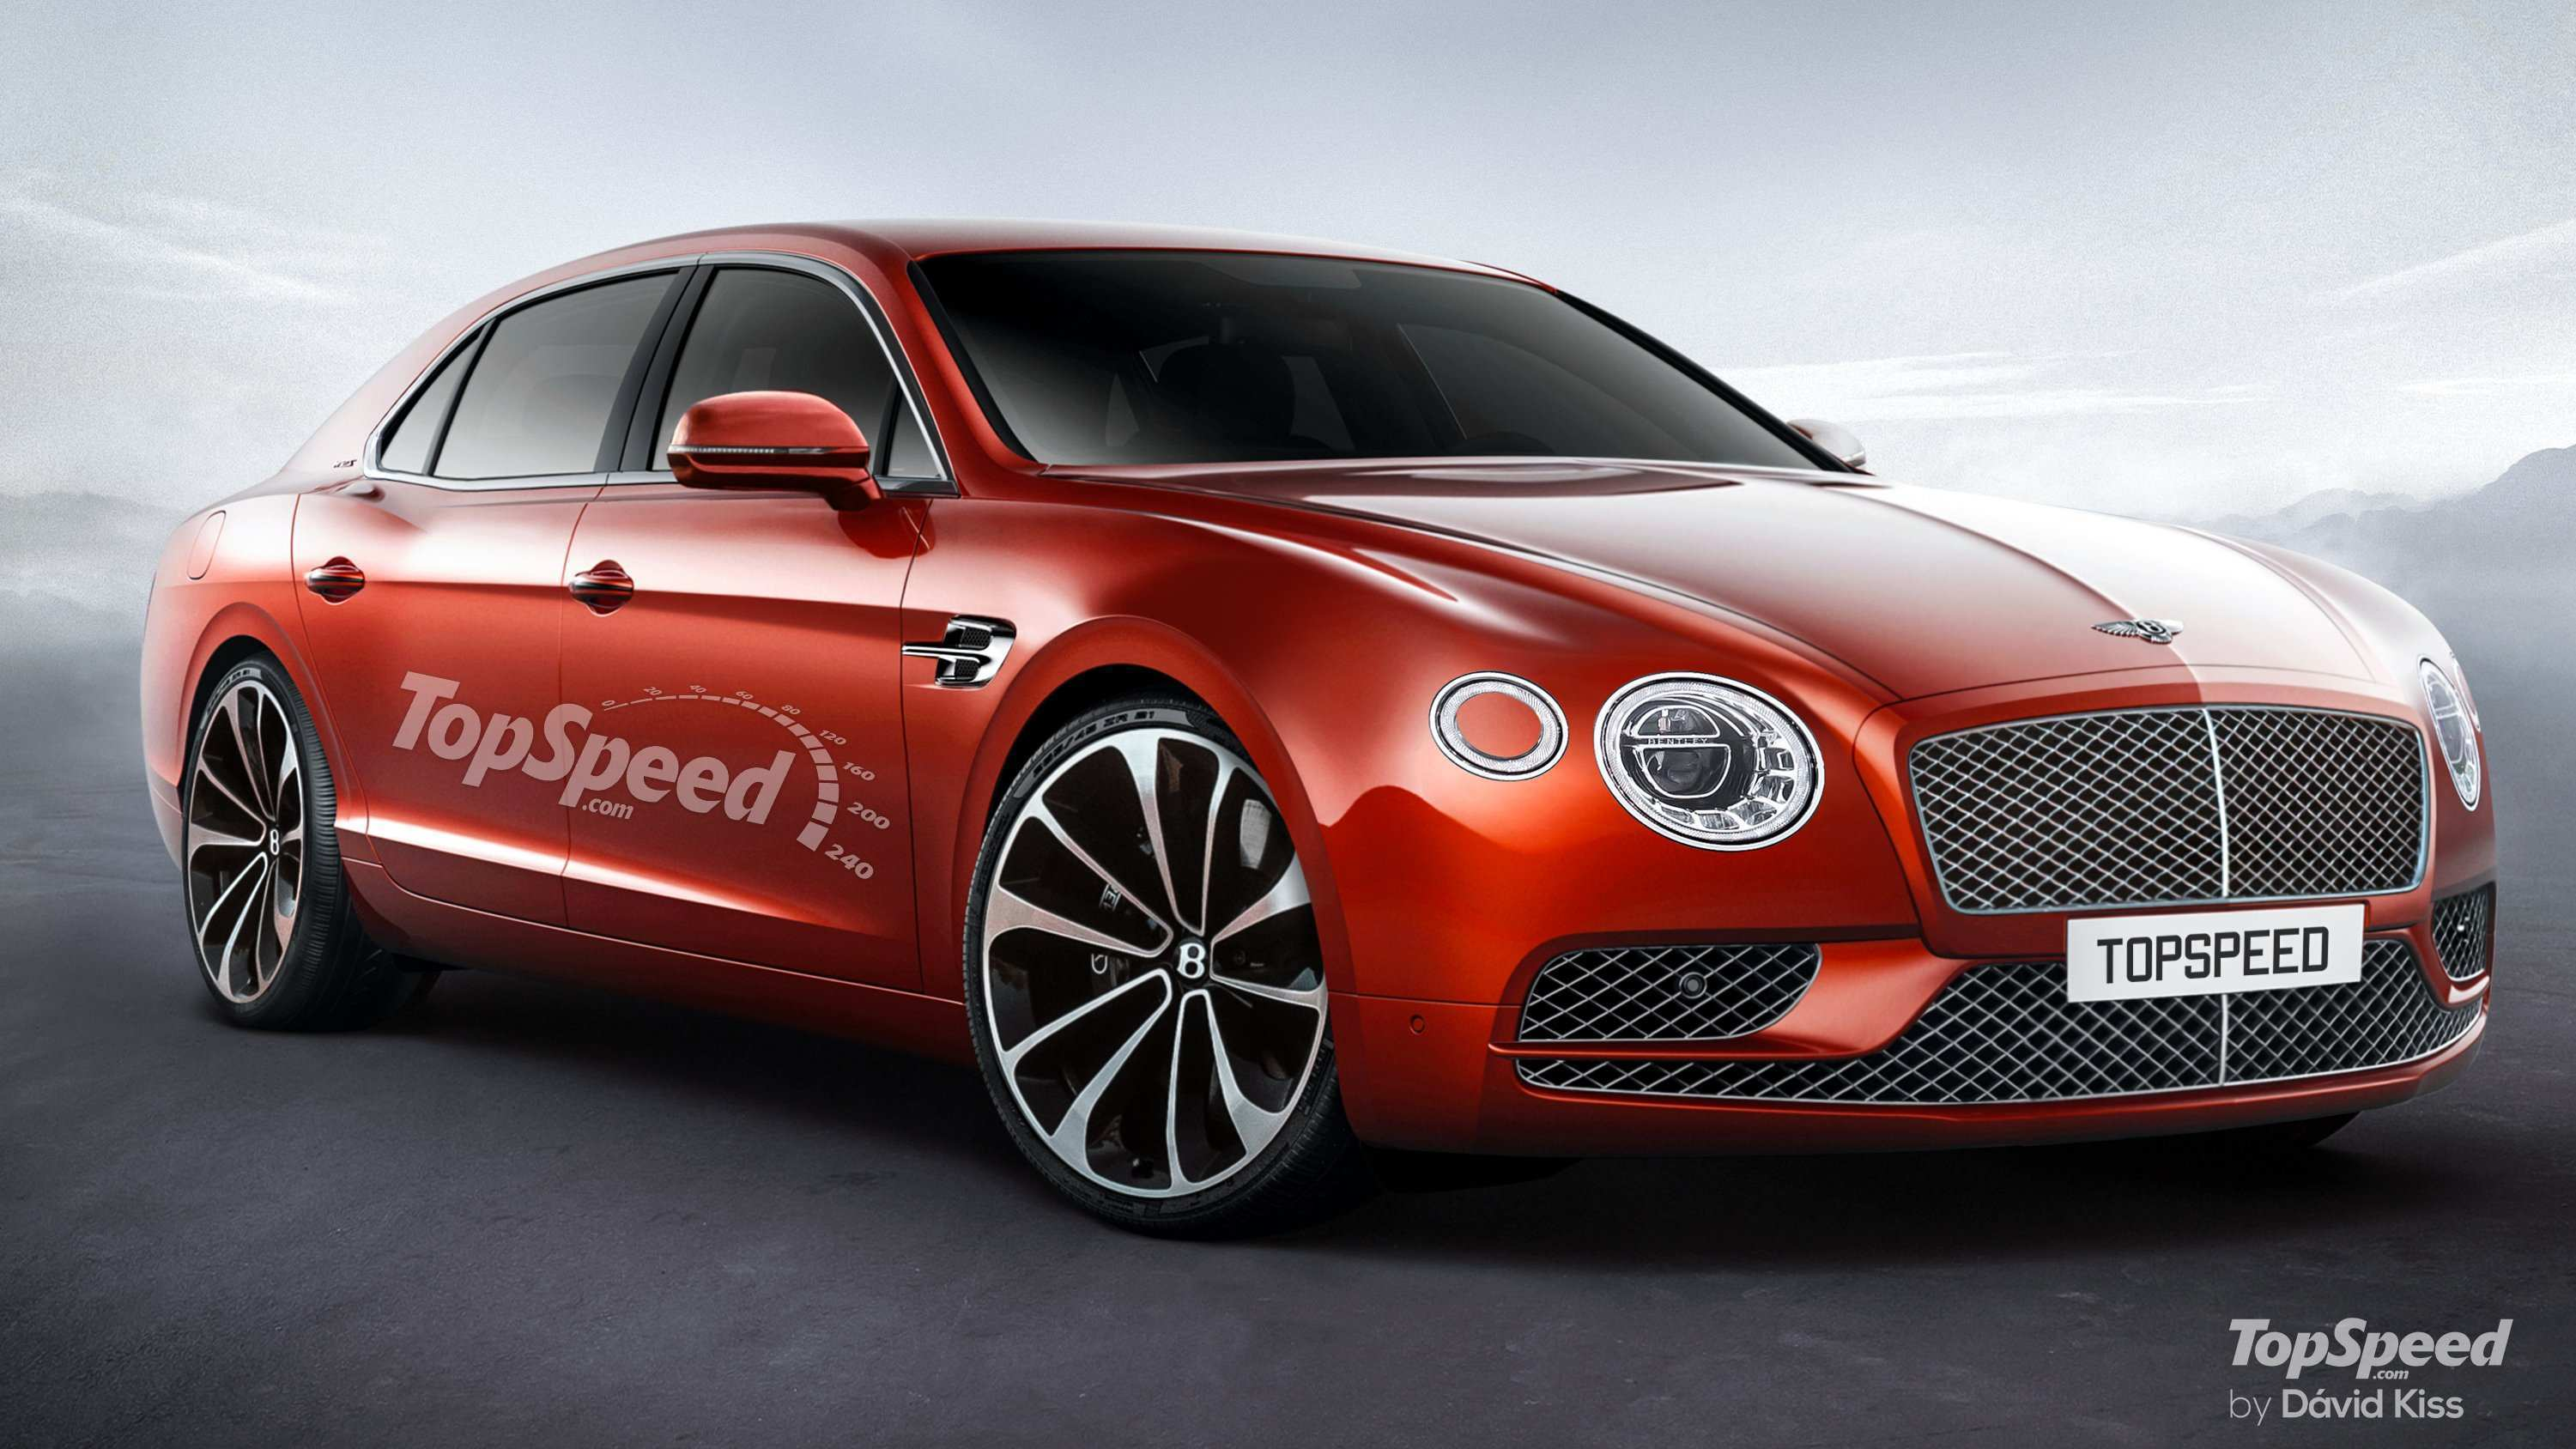 92 All New 2019 Bentley 4 Door Exterior and Interior for 2019 Bentley 4 Door